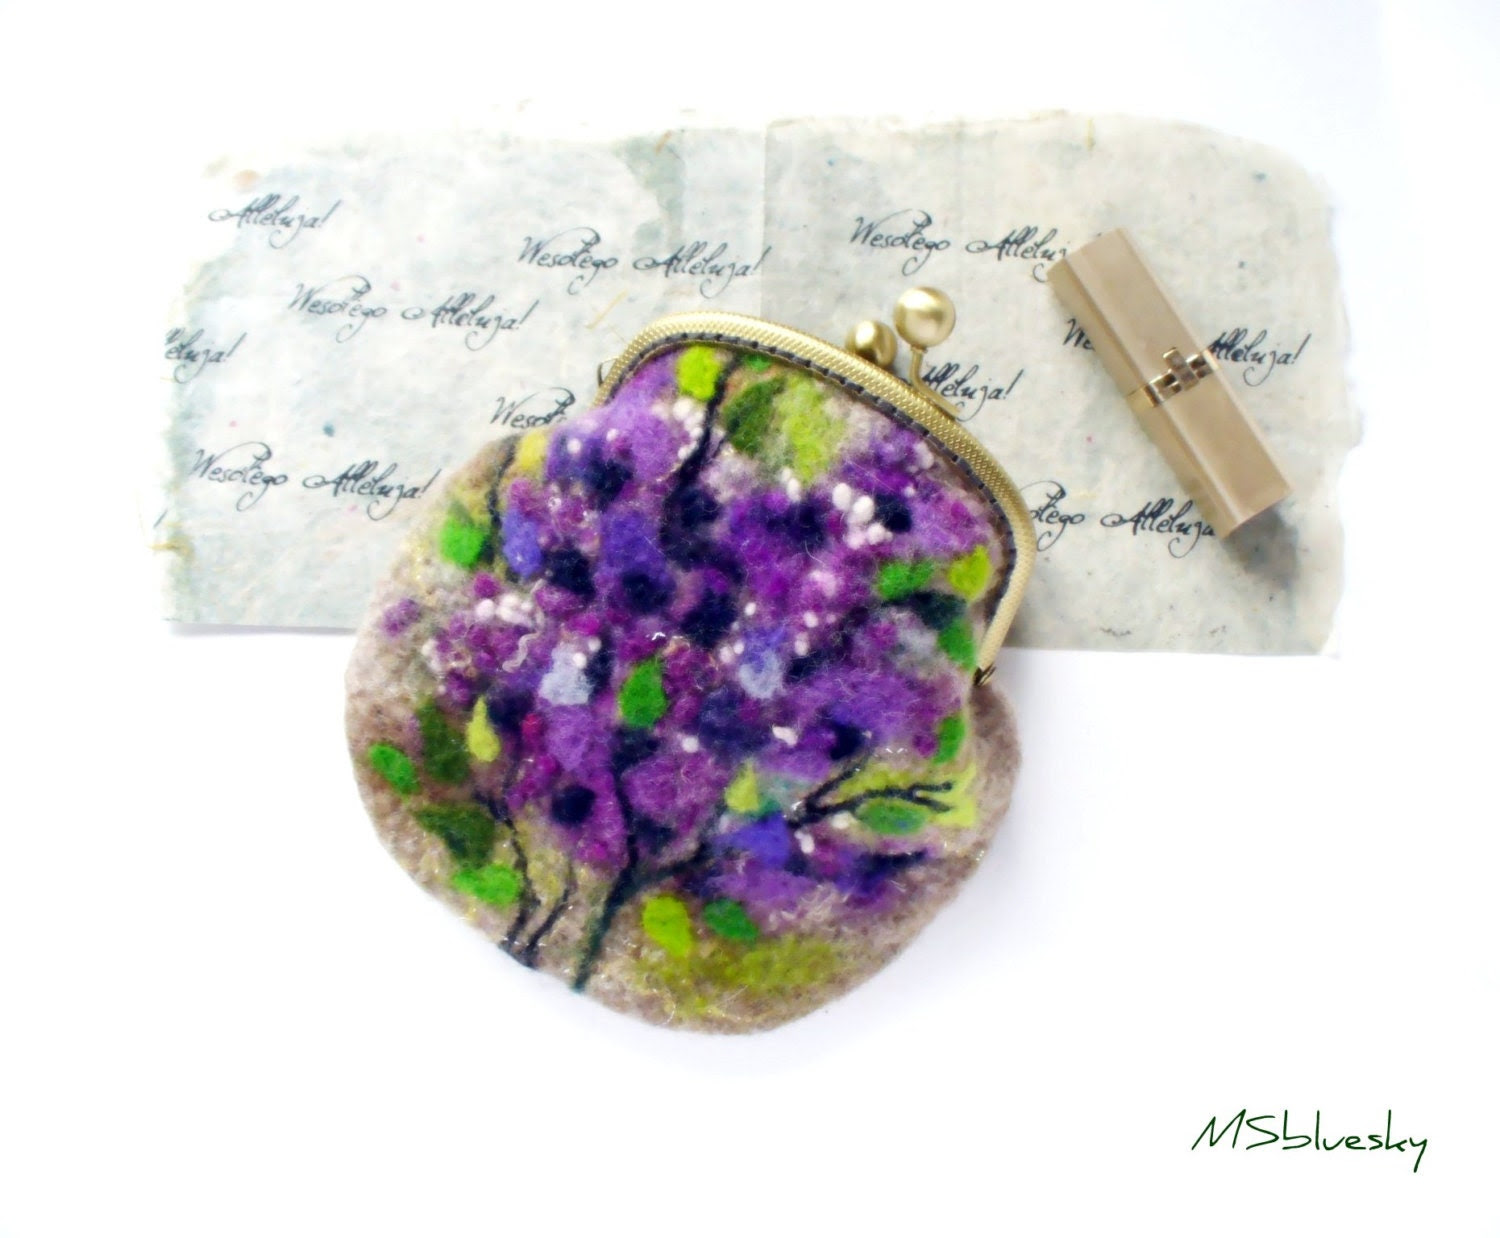 Wet Felted FLOWER Lilac Bushes coin purse Ready to Ship with bag frame metal closure Handmade  gift for her under 50 USD - MSbluesky